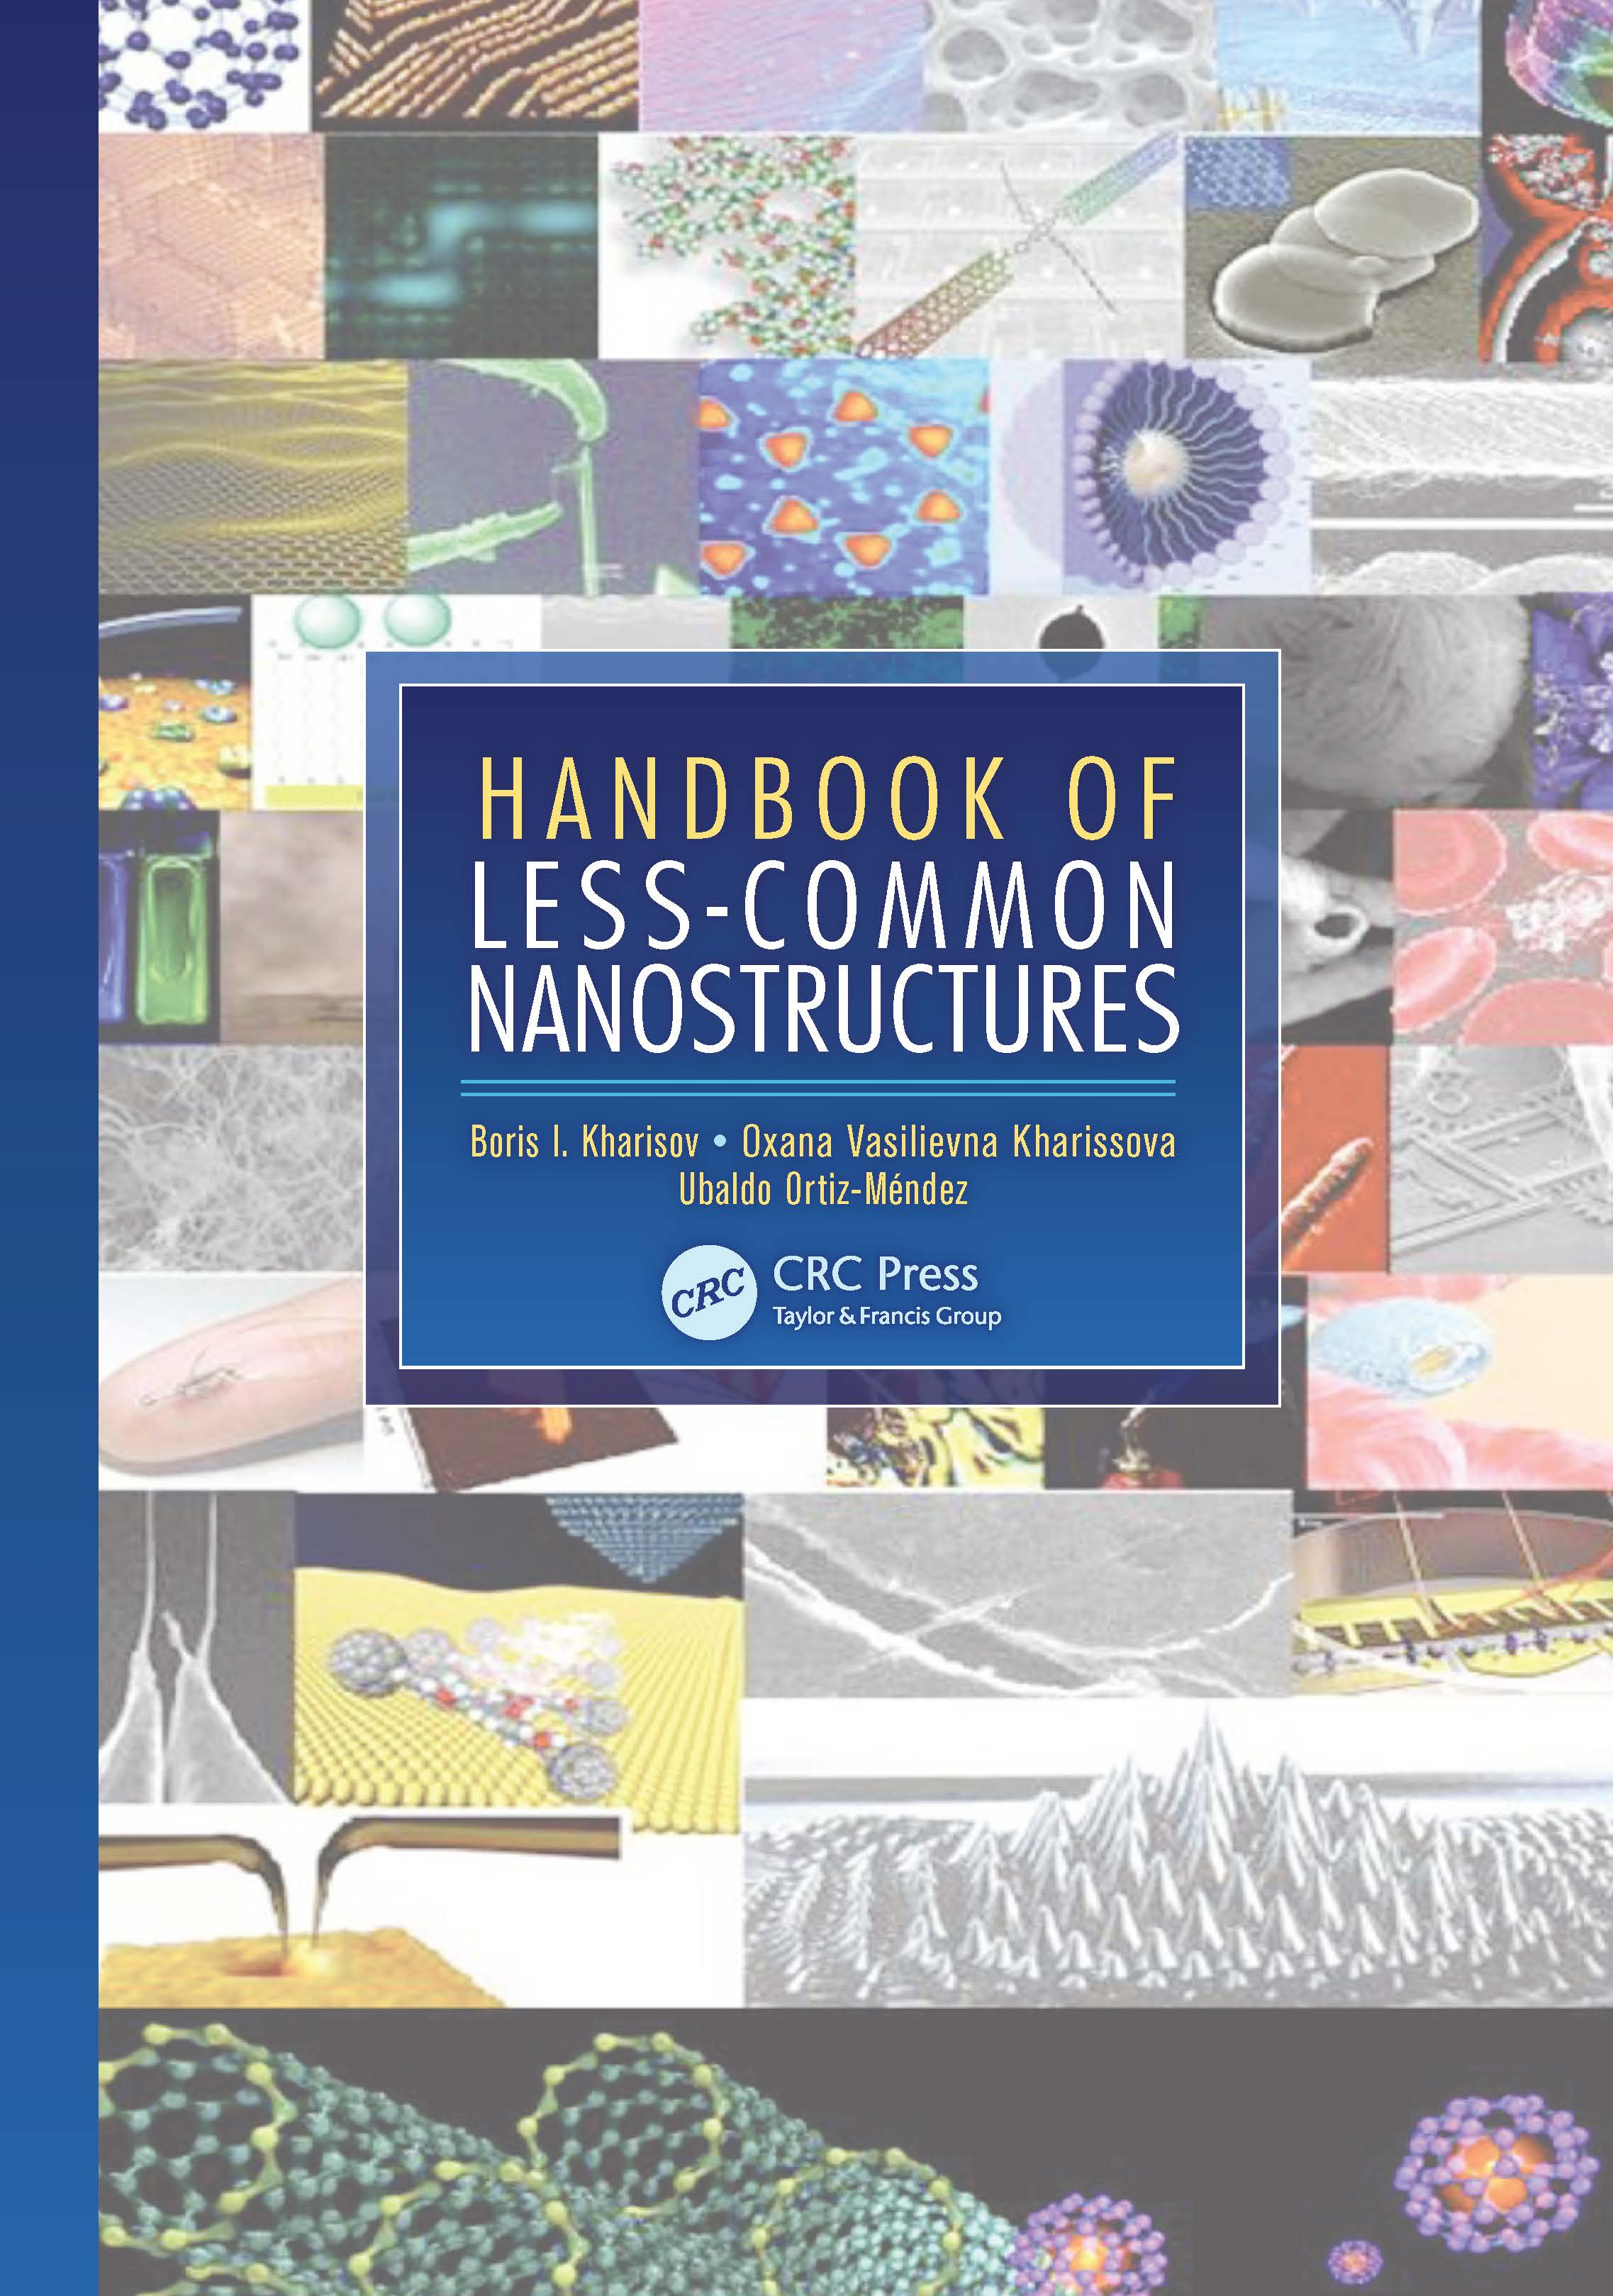 Handbook of Less-Common Nanostructures: 1st Edition (Paperback) book cover